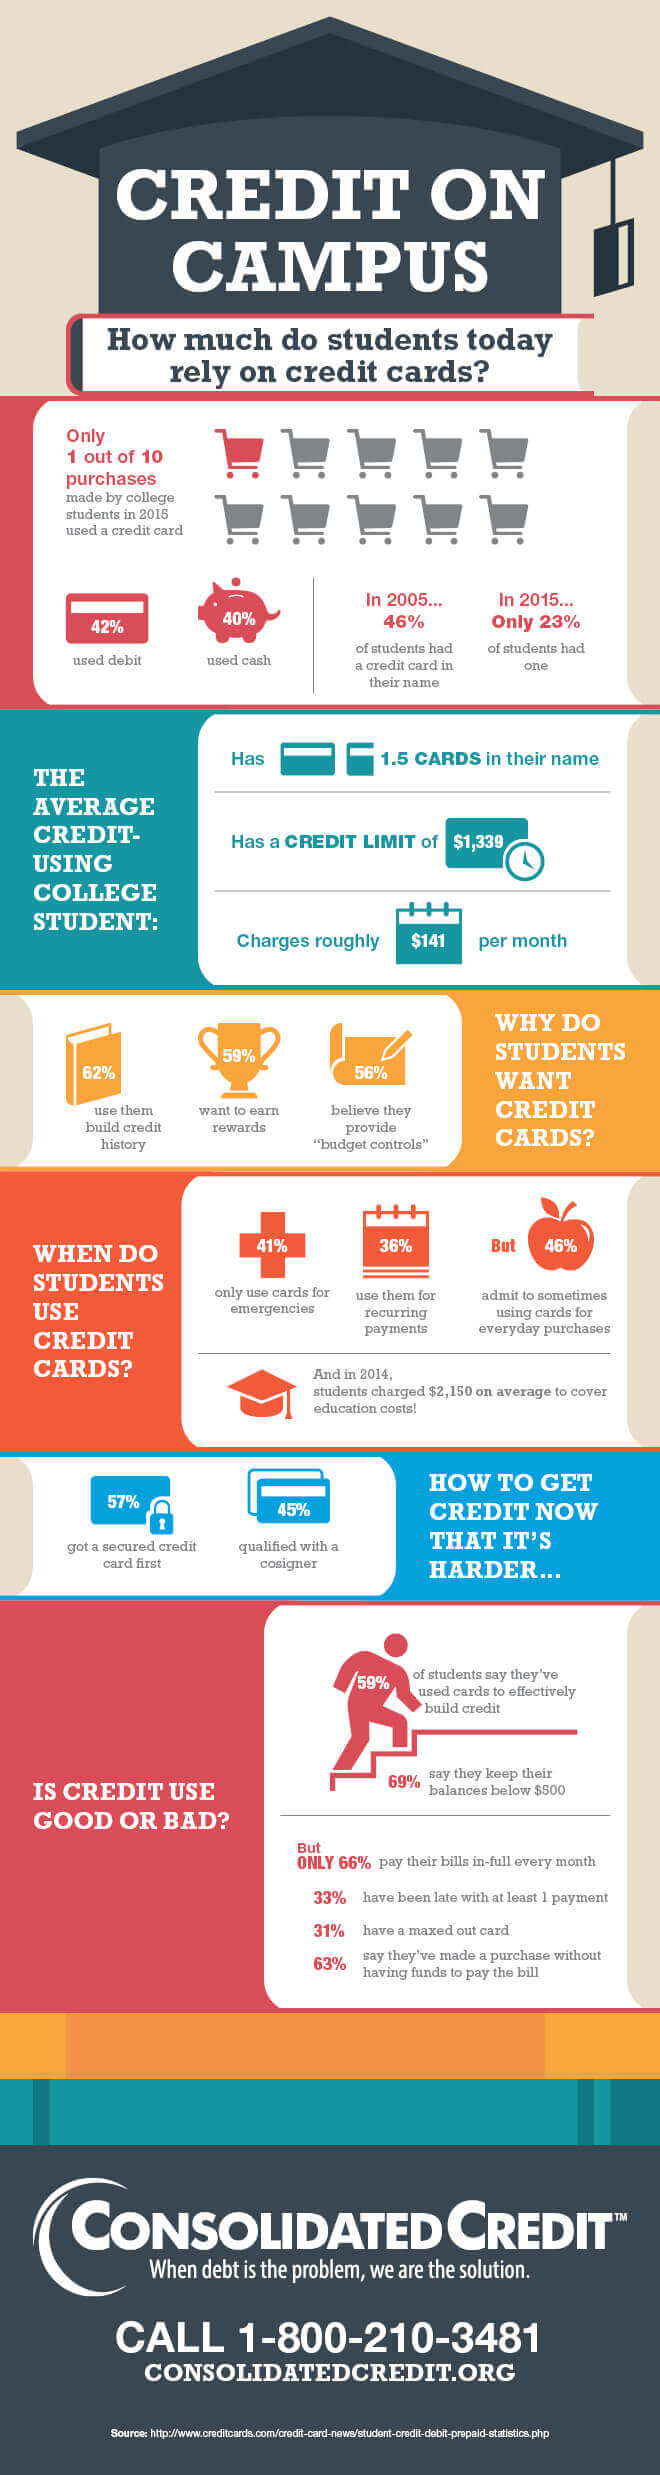 A look at student credit card use in the U.S.